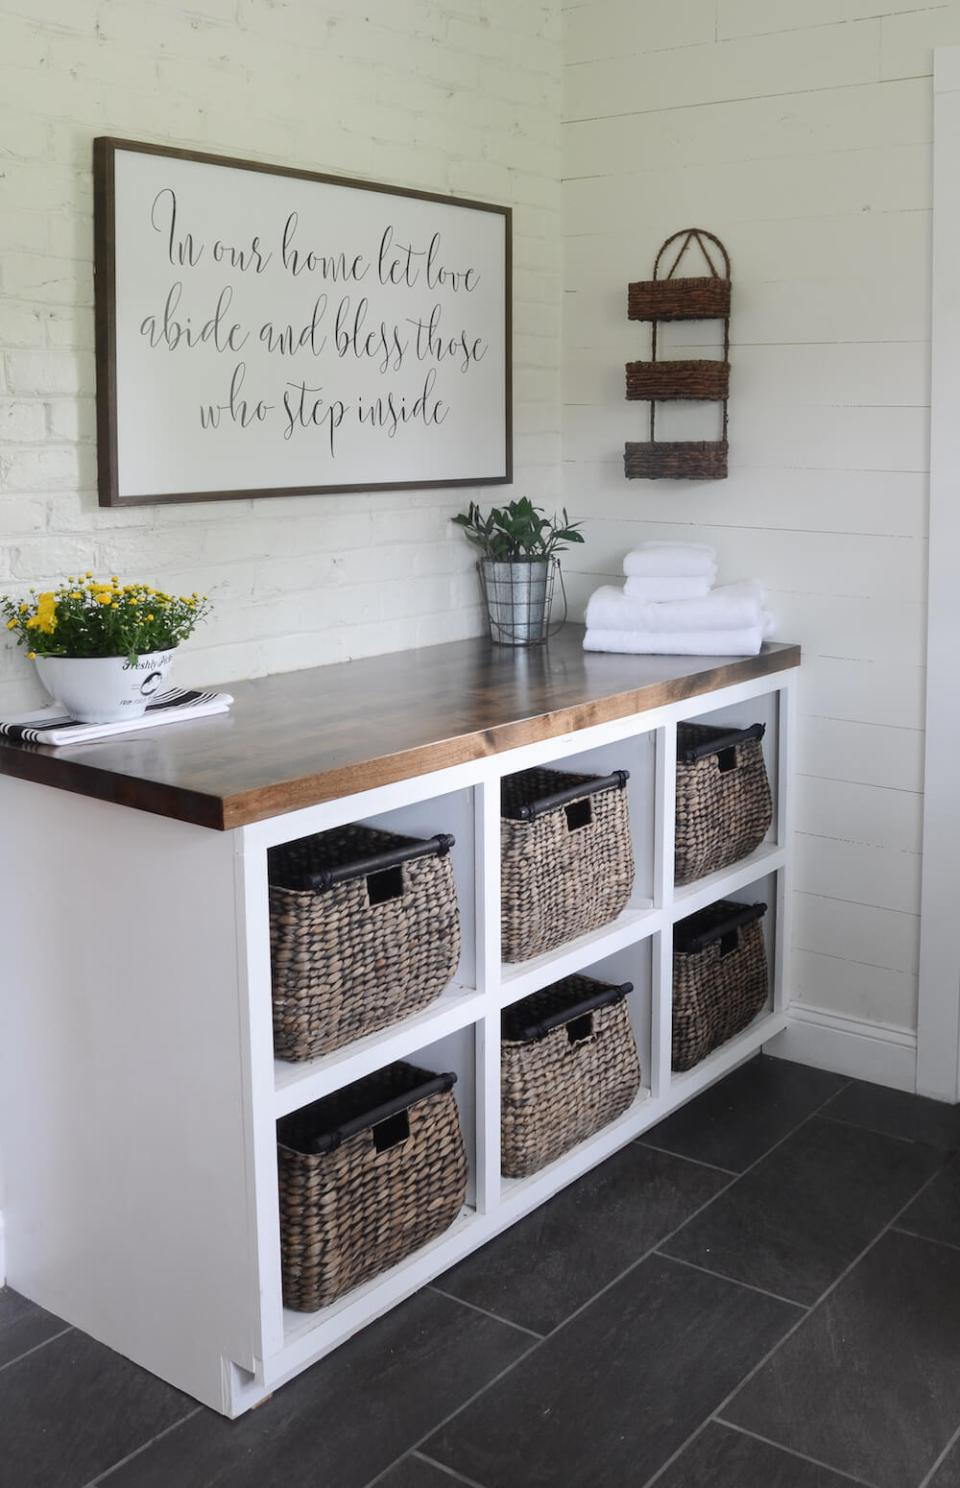 DIY Farmhouse Laundry Room Ideas: Folding station with baskets for each child's laundry